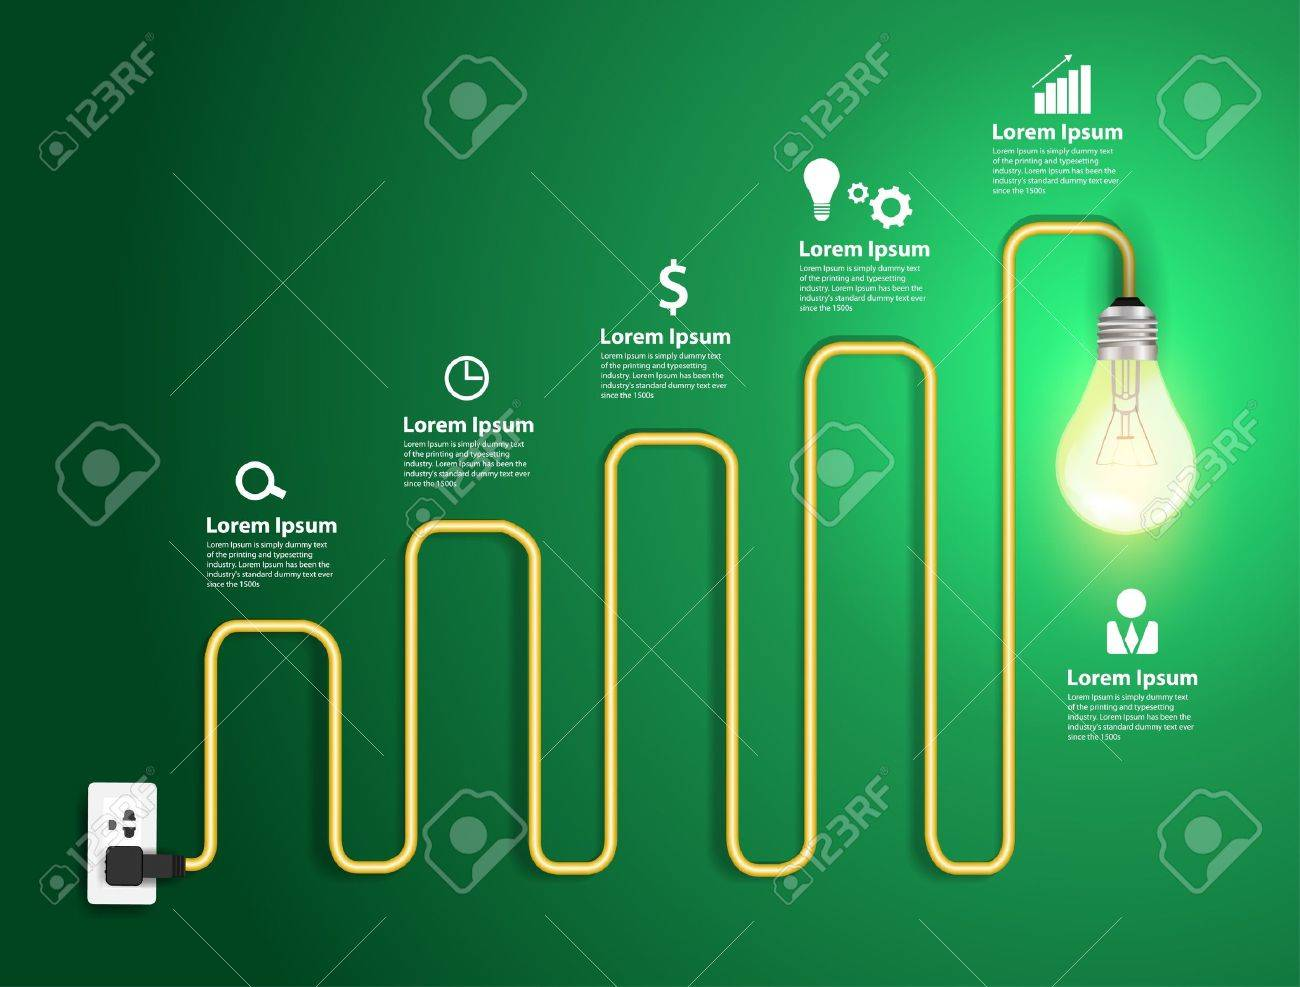 12 957 plug wires stock illustrations cliparts and royalty plug wires creative light bulb abstract charts and graphs modern design template workflow layout